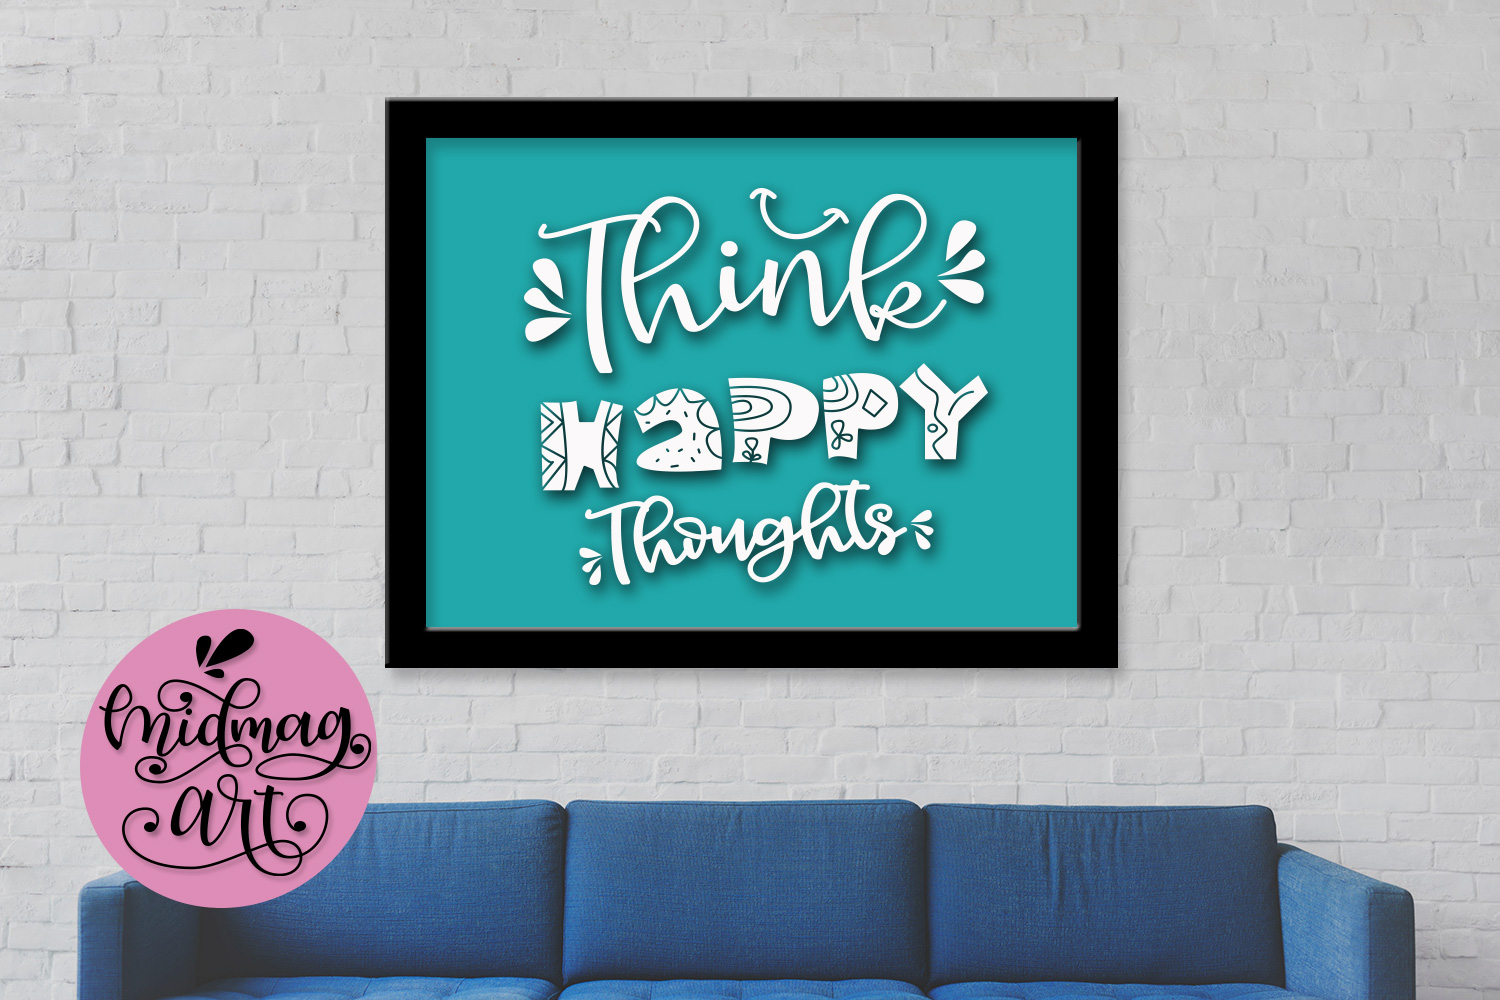 Think happy thoughts svg, png, jpeg, eps and dxf example image 3